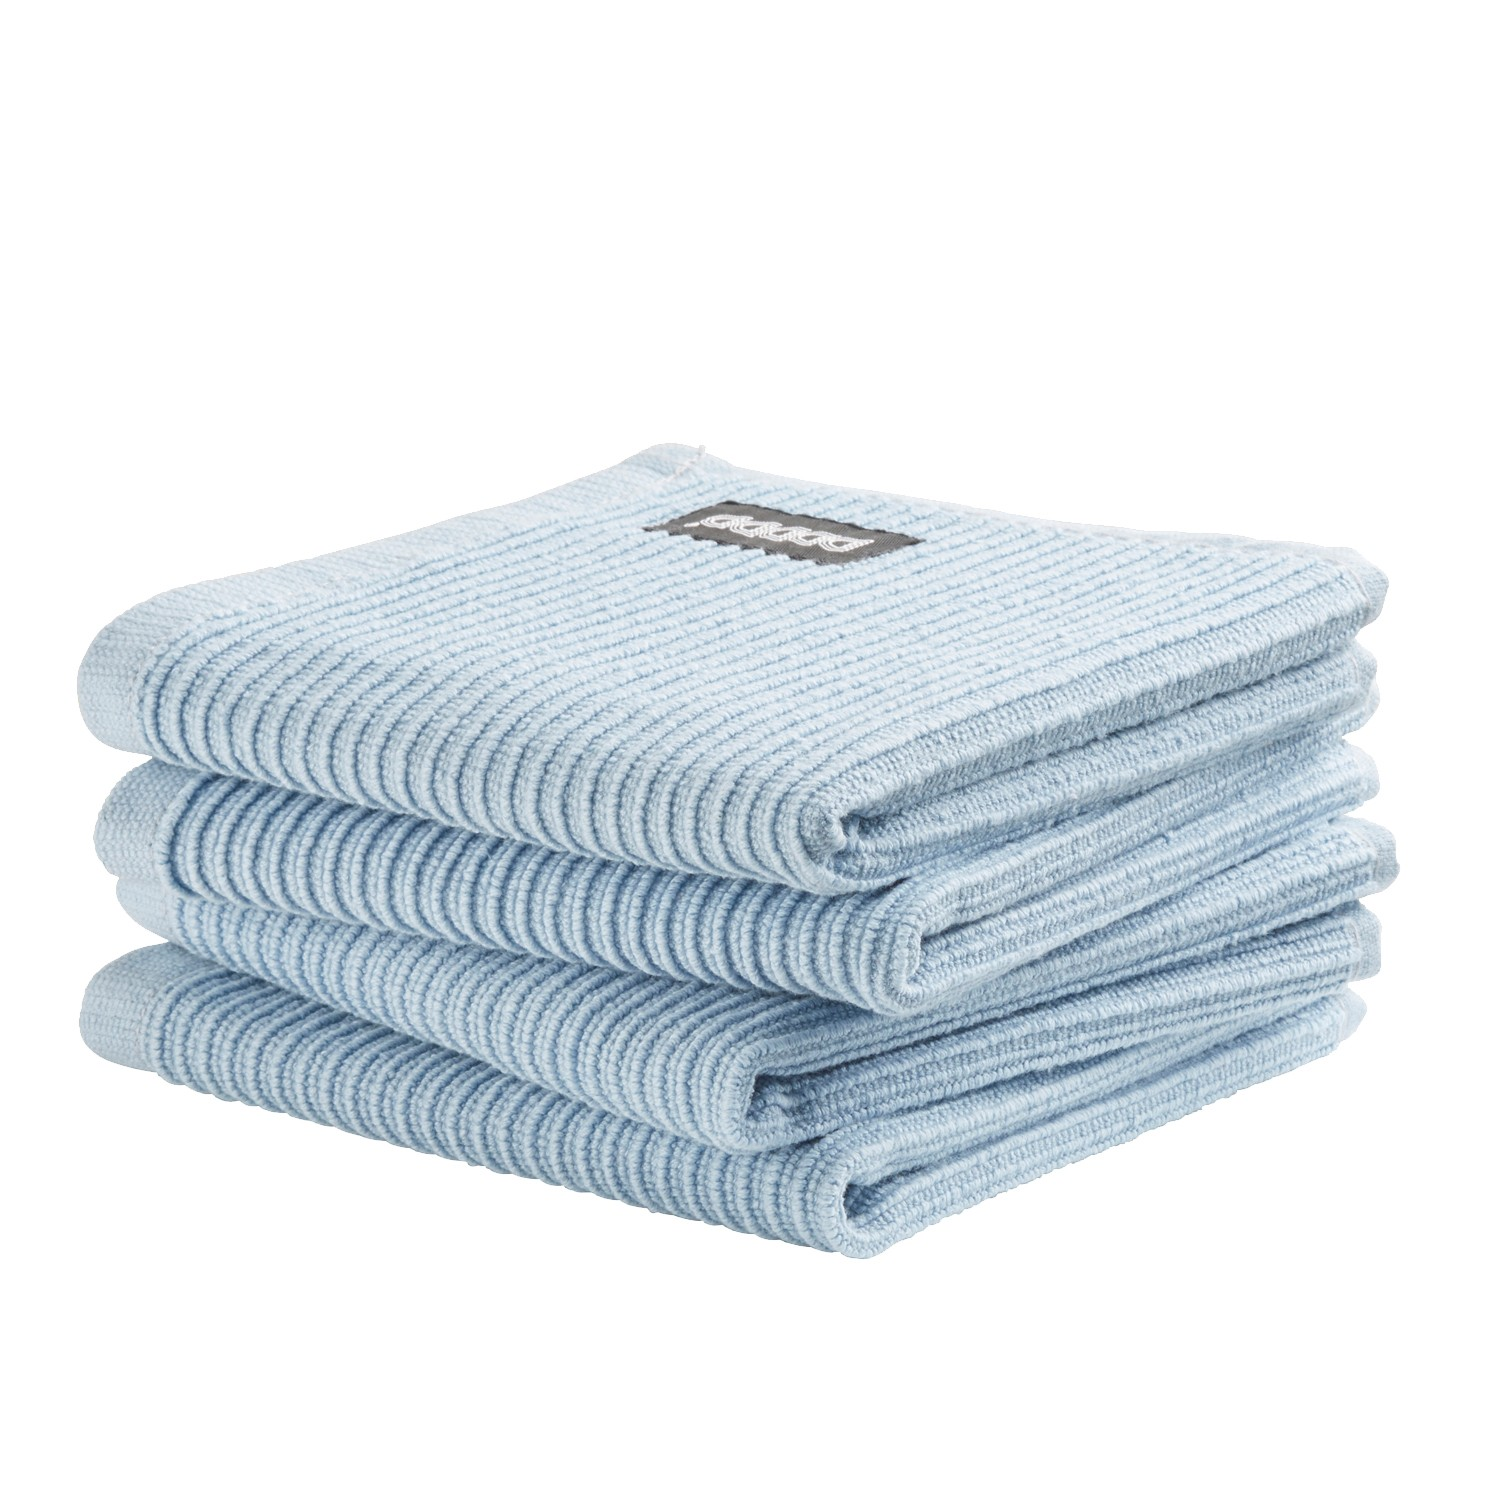 Vaatdoek Basic Clean | Pastel blue | 30 x 30 cm